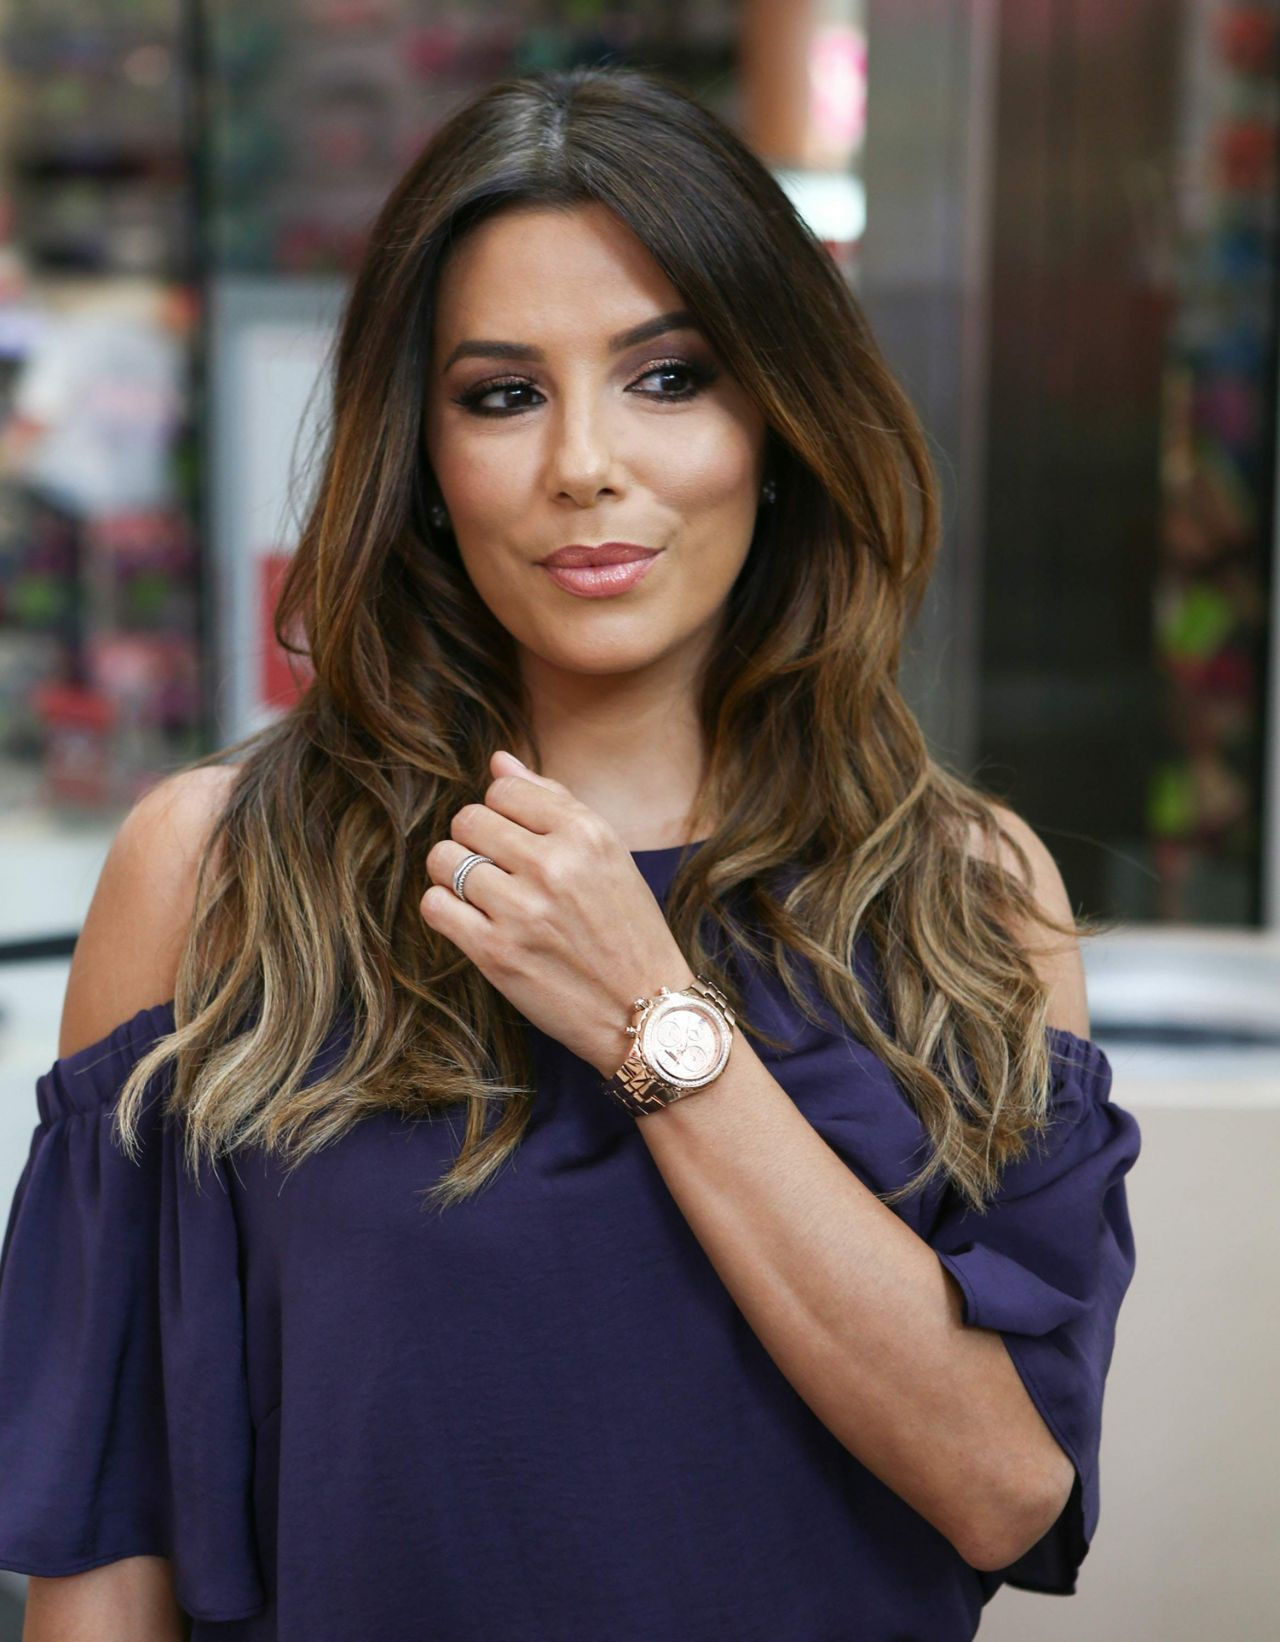 Eva Longoria Technomarine Watch Line Promotion In Miami